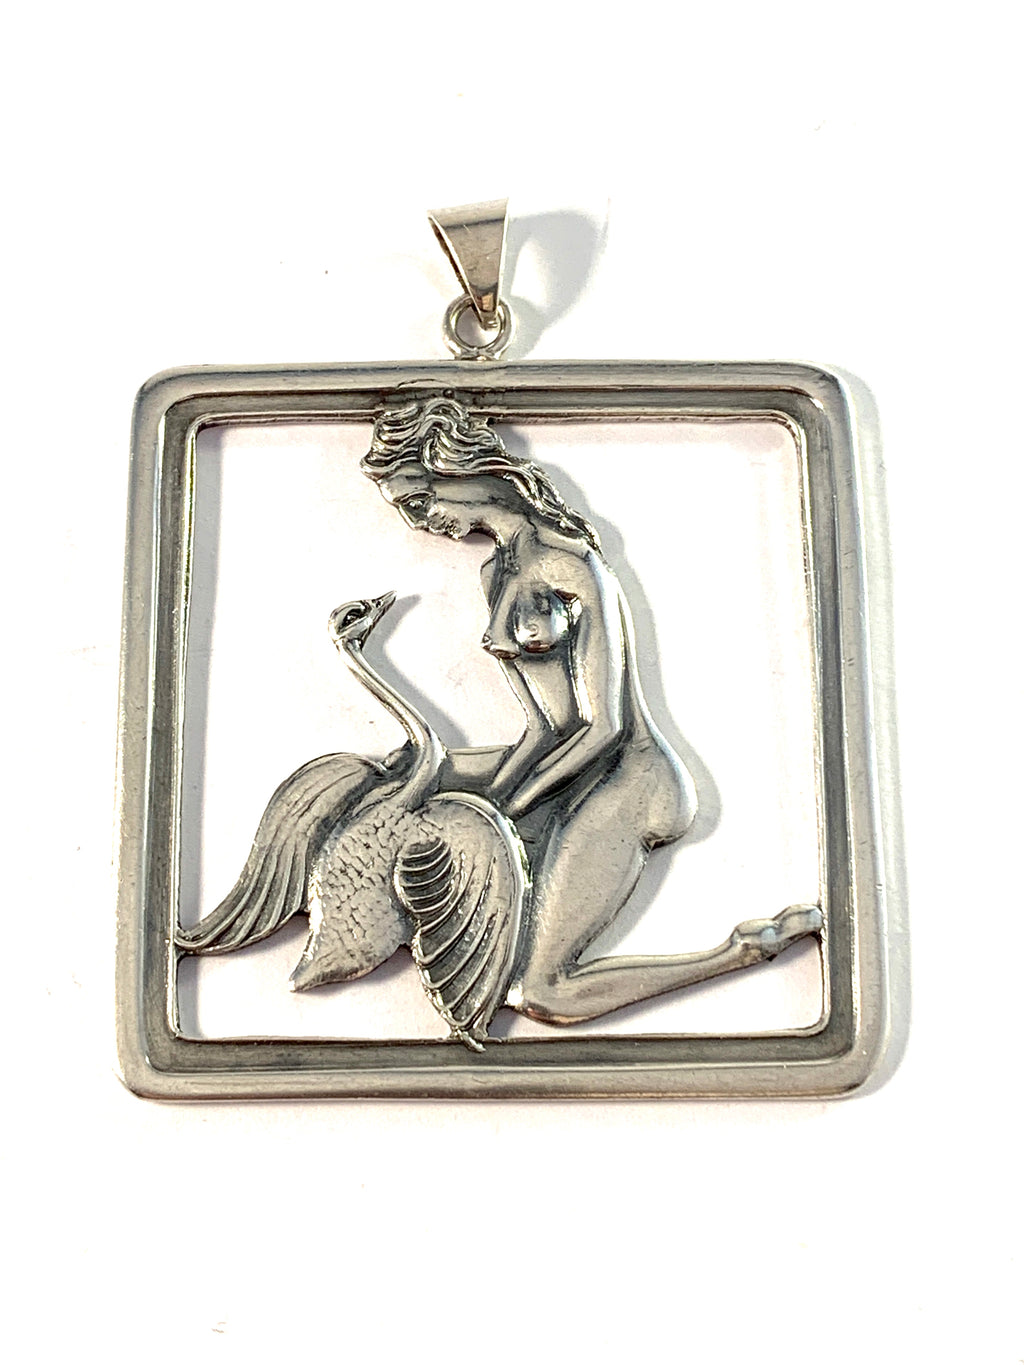 Denmark 1940s. Large Solid Silver Pendant.